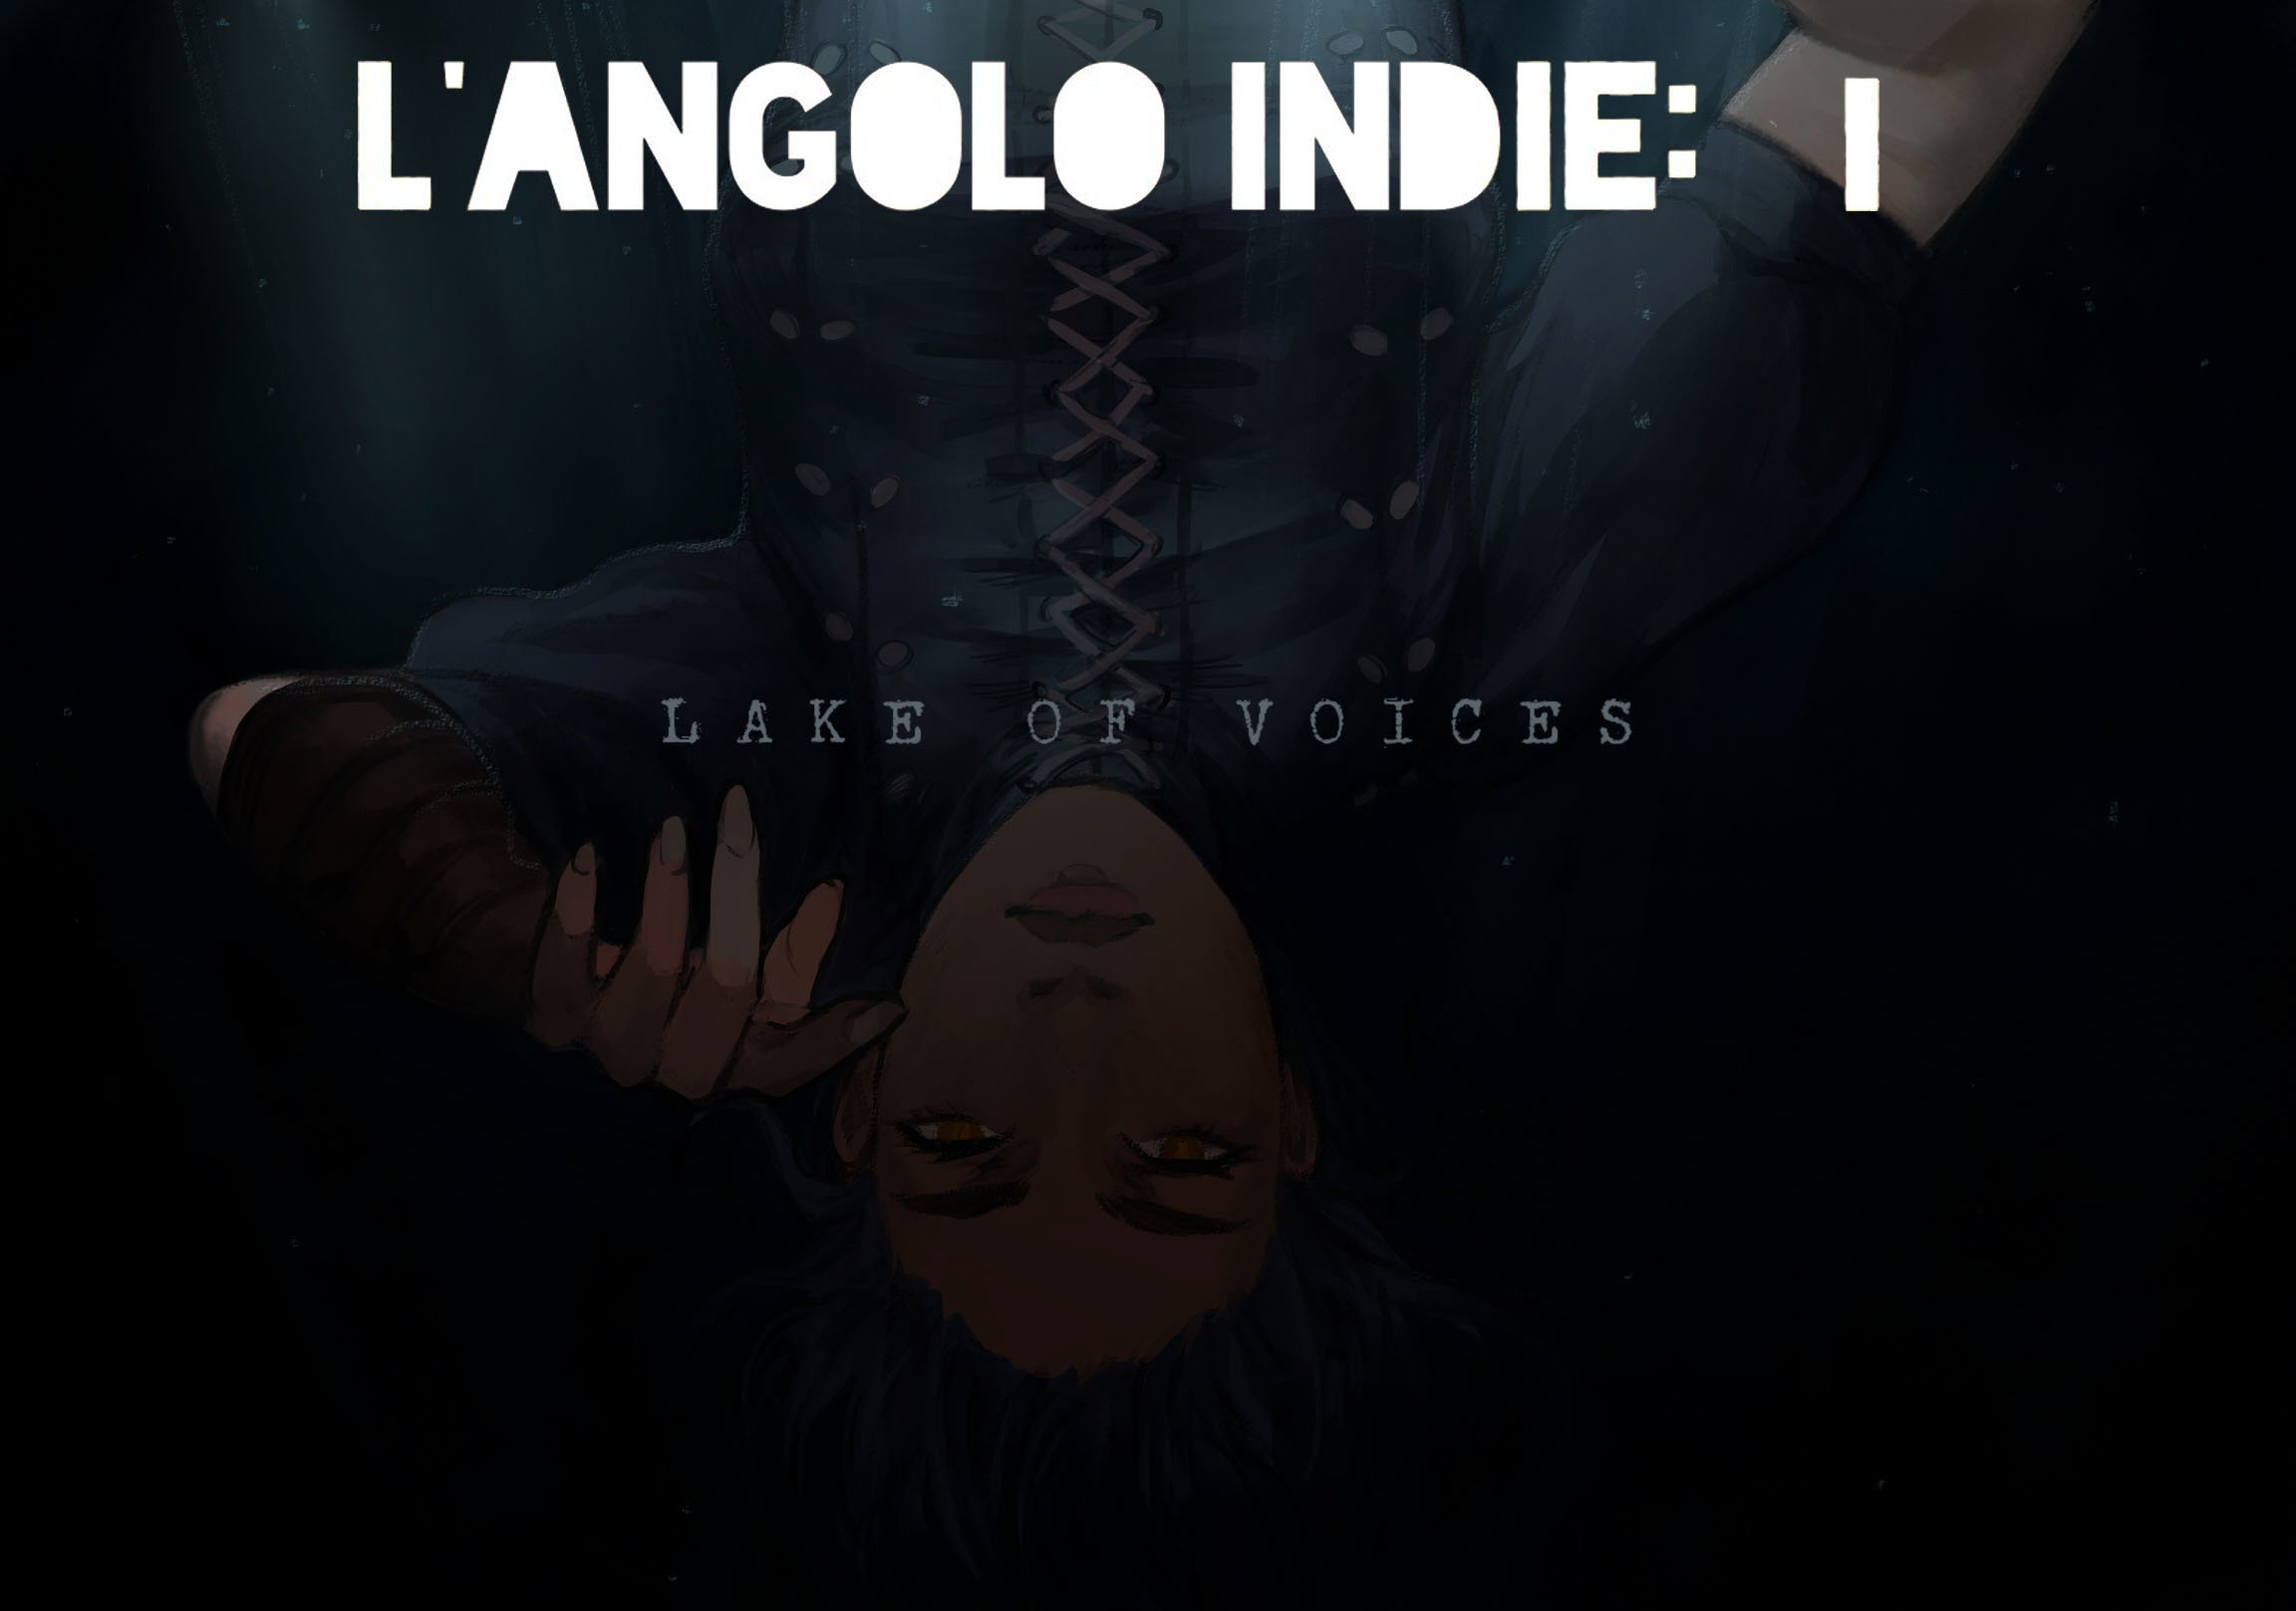 L'angolo Indie: Lake of Voices